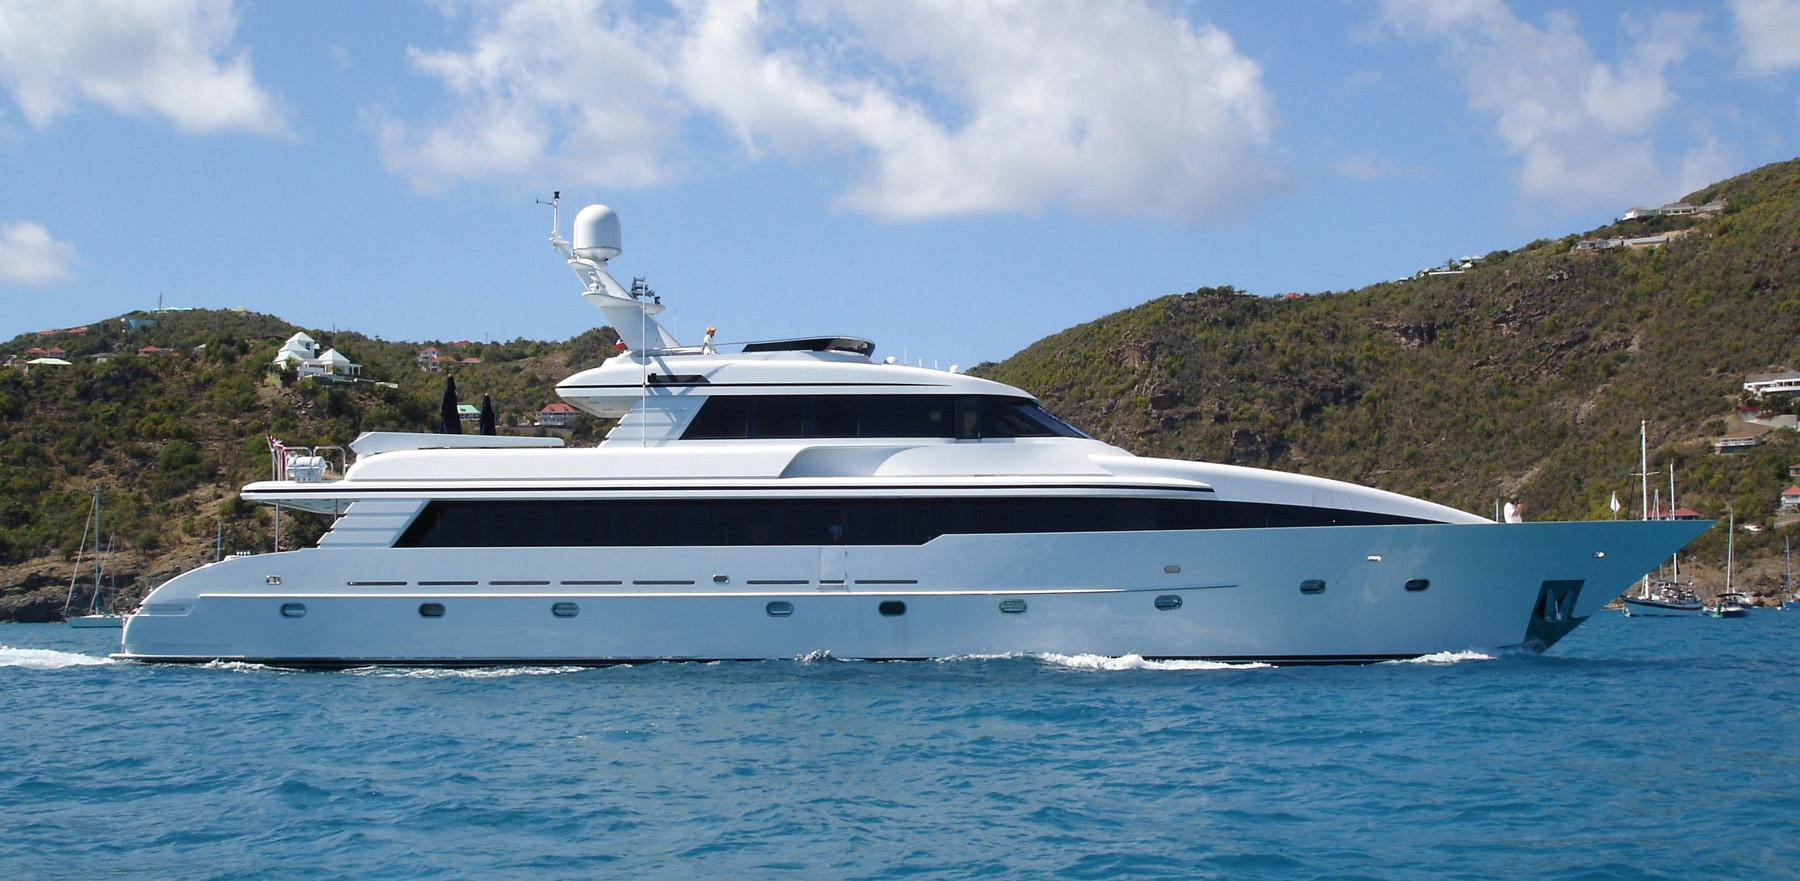 LIFE'S FINEST II specs with detailed specification and builder summary